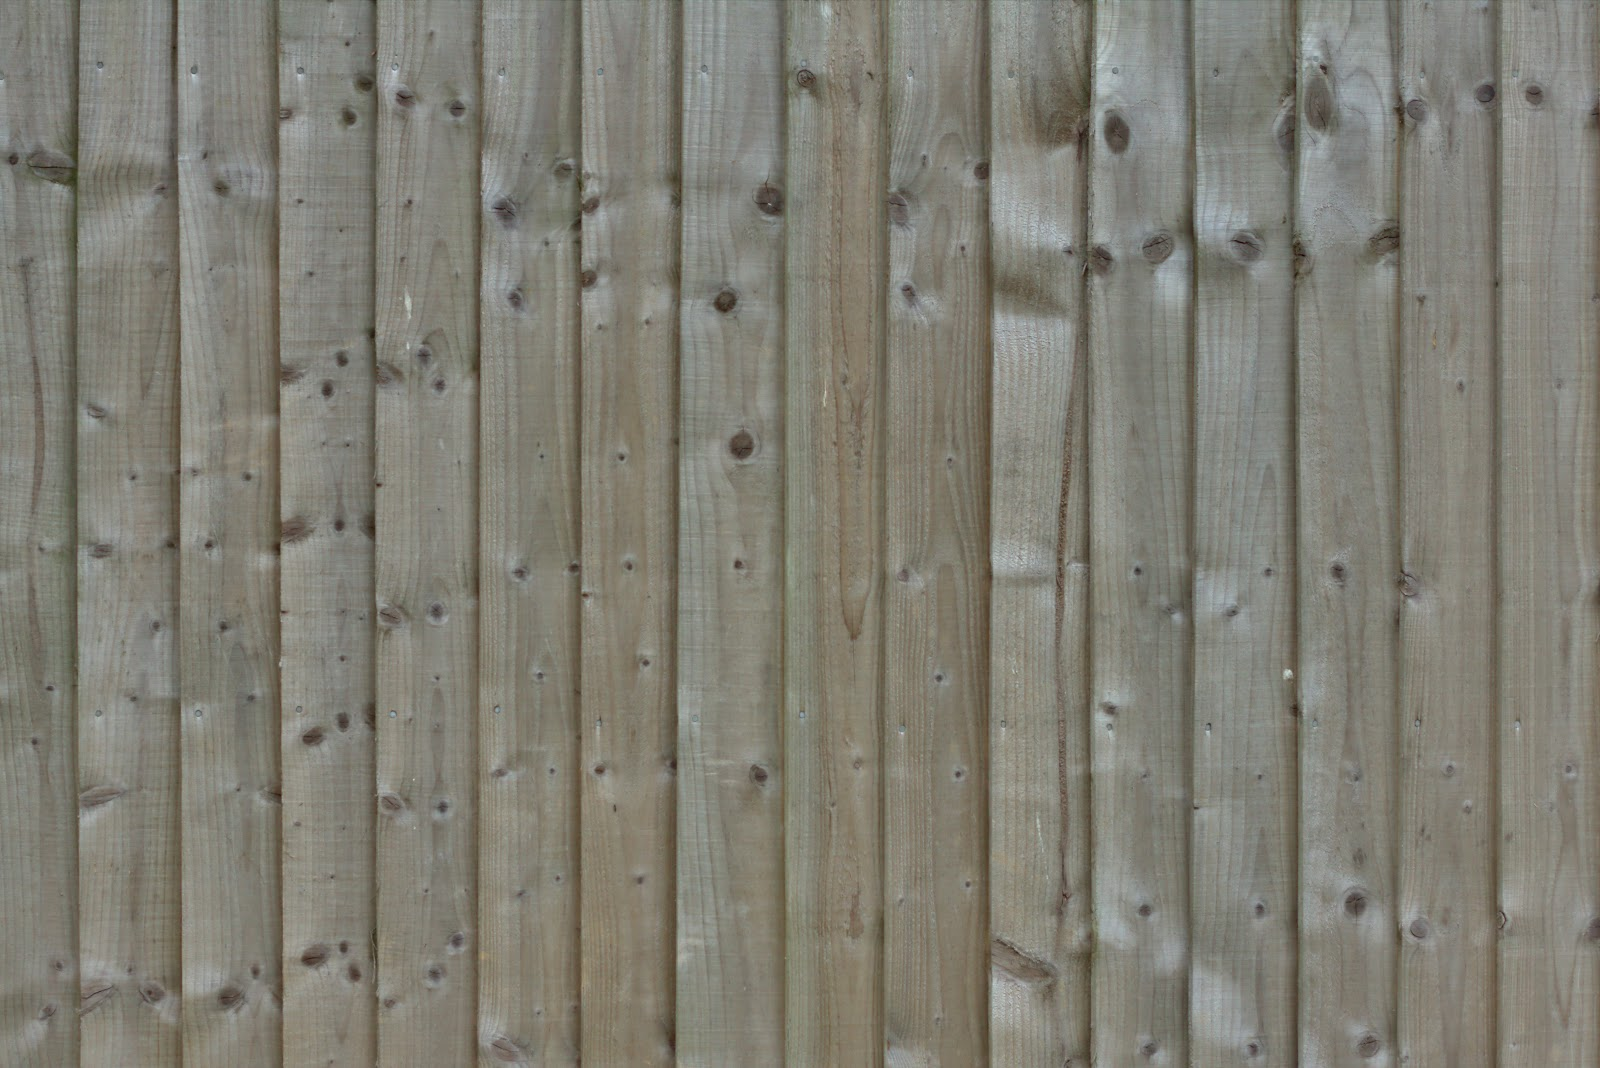 (Wood 24) fence gate panel texture